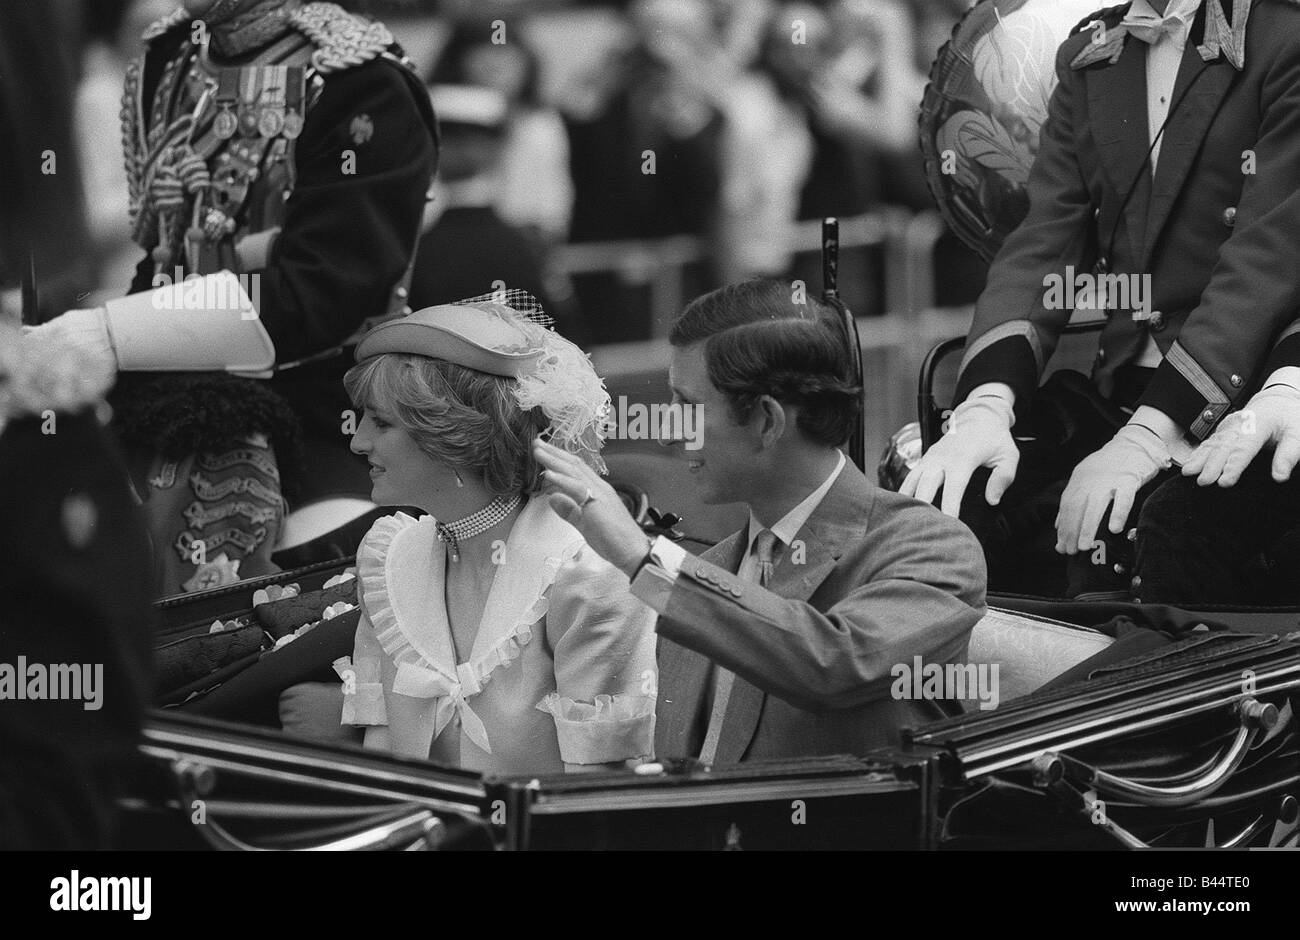 Royal Wedding Prince Charles Diana Wedding The Royal couple head off for their extended honeymoon with the worlds - Stock Image